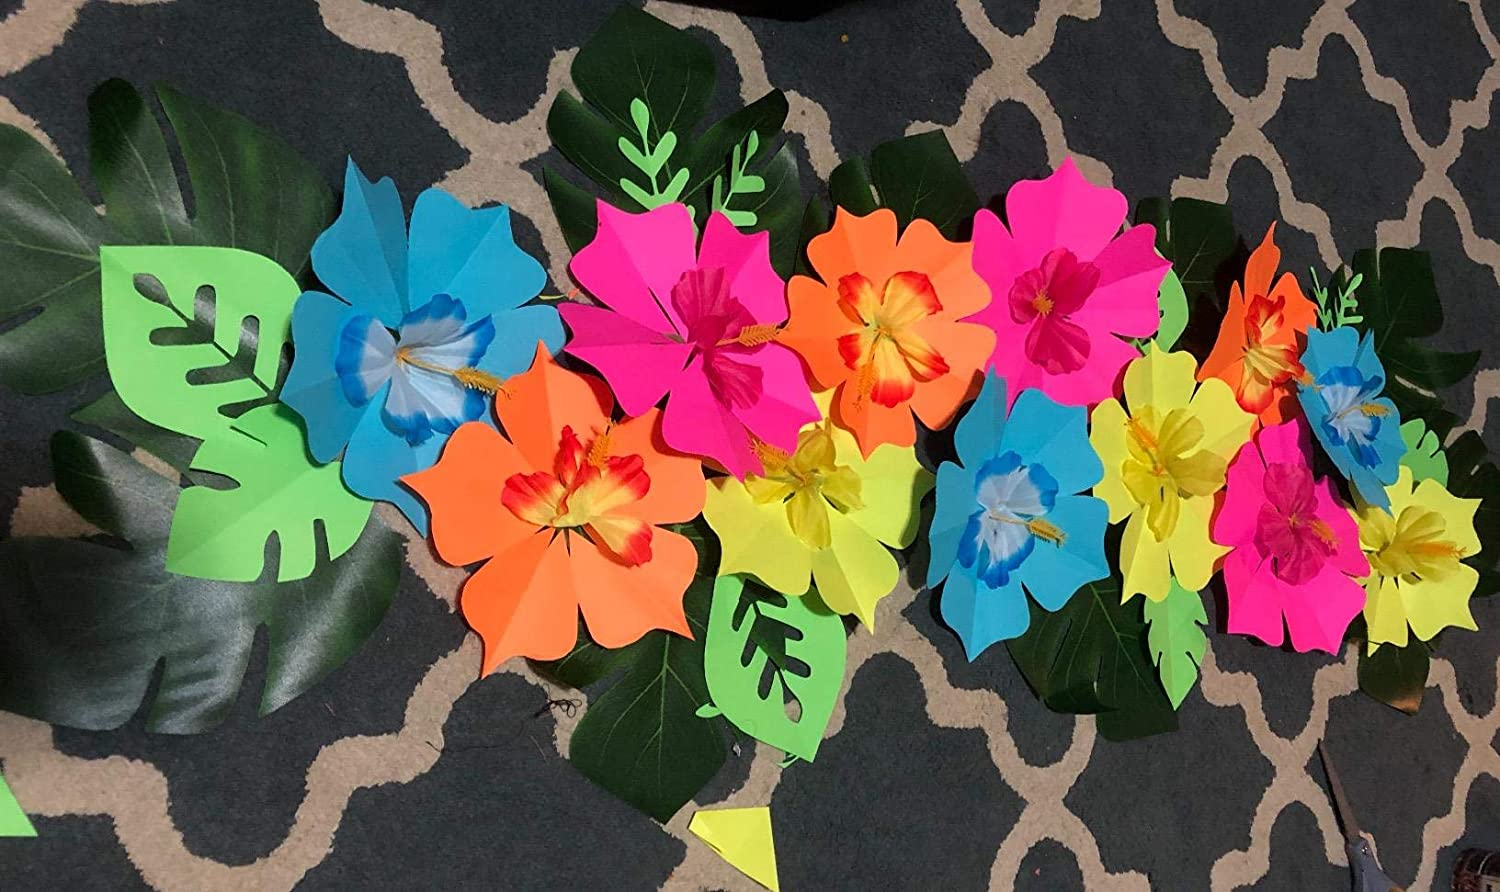 54pcs Artificial Tropical Palm Leaves and Silk Hibiscus Flowers for Tropical Party Decorations Hawaiian Party Decorations Supplies,Jungle Party Decorations Luau Party Decorations Table Decorations